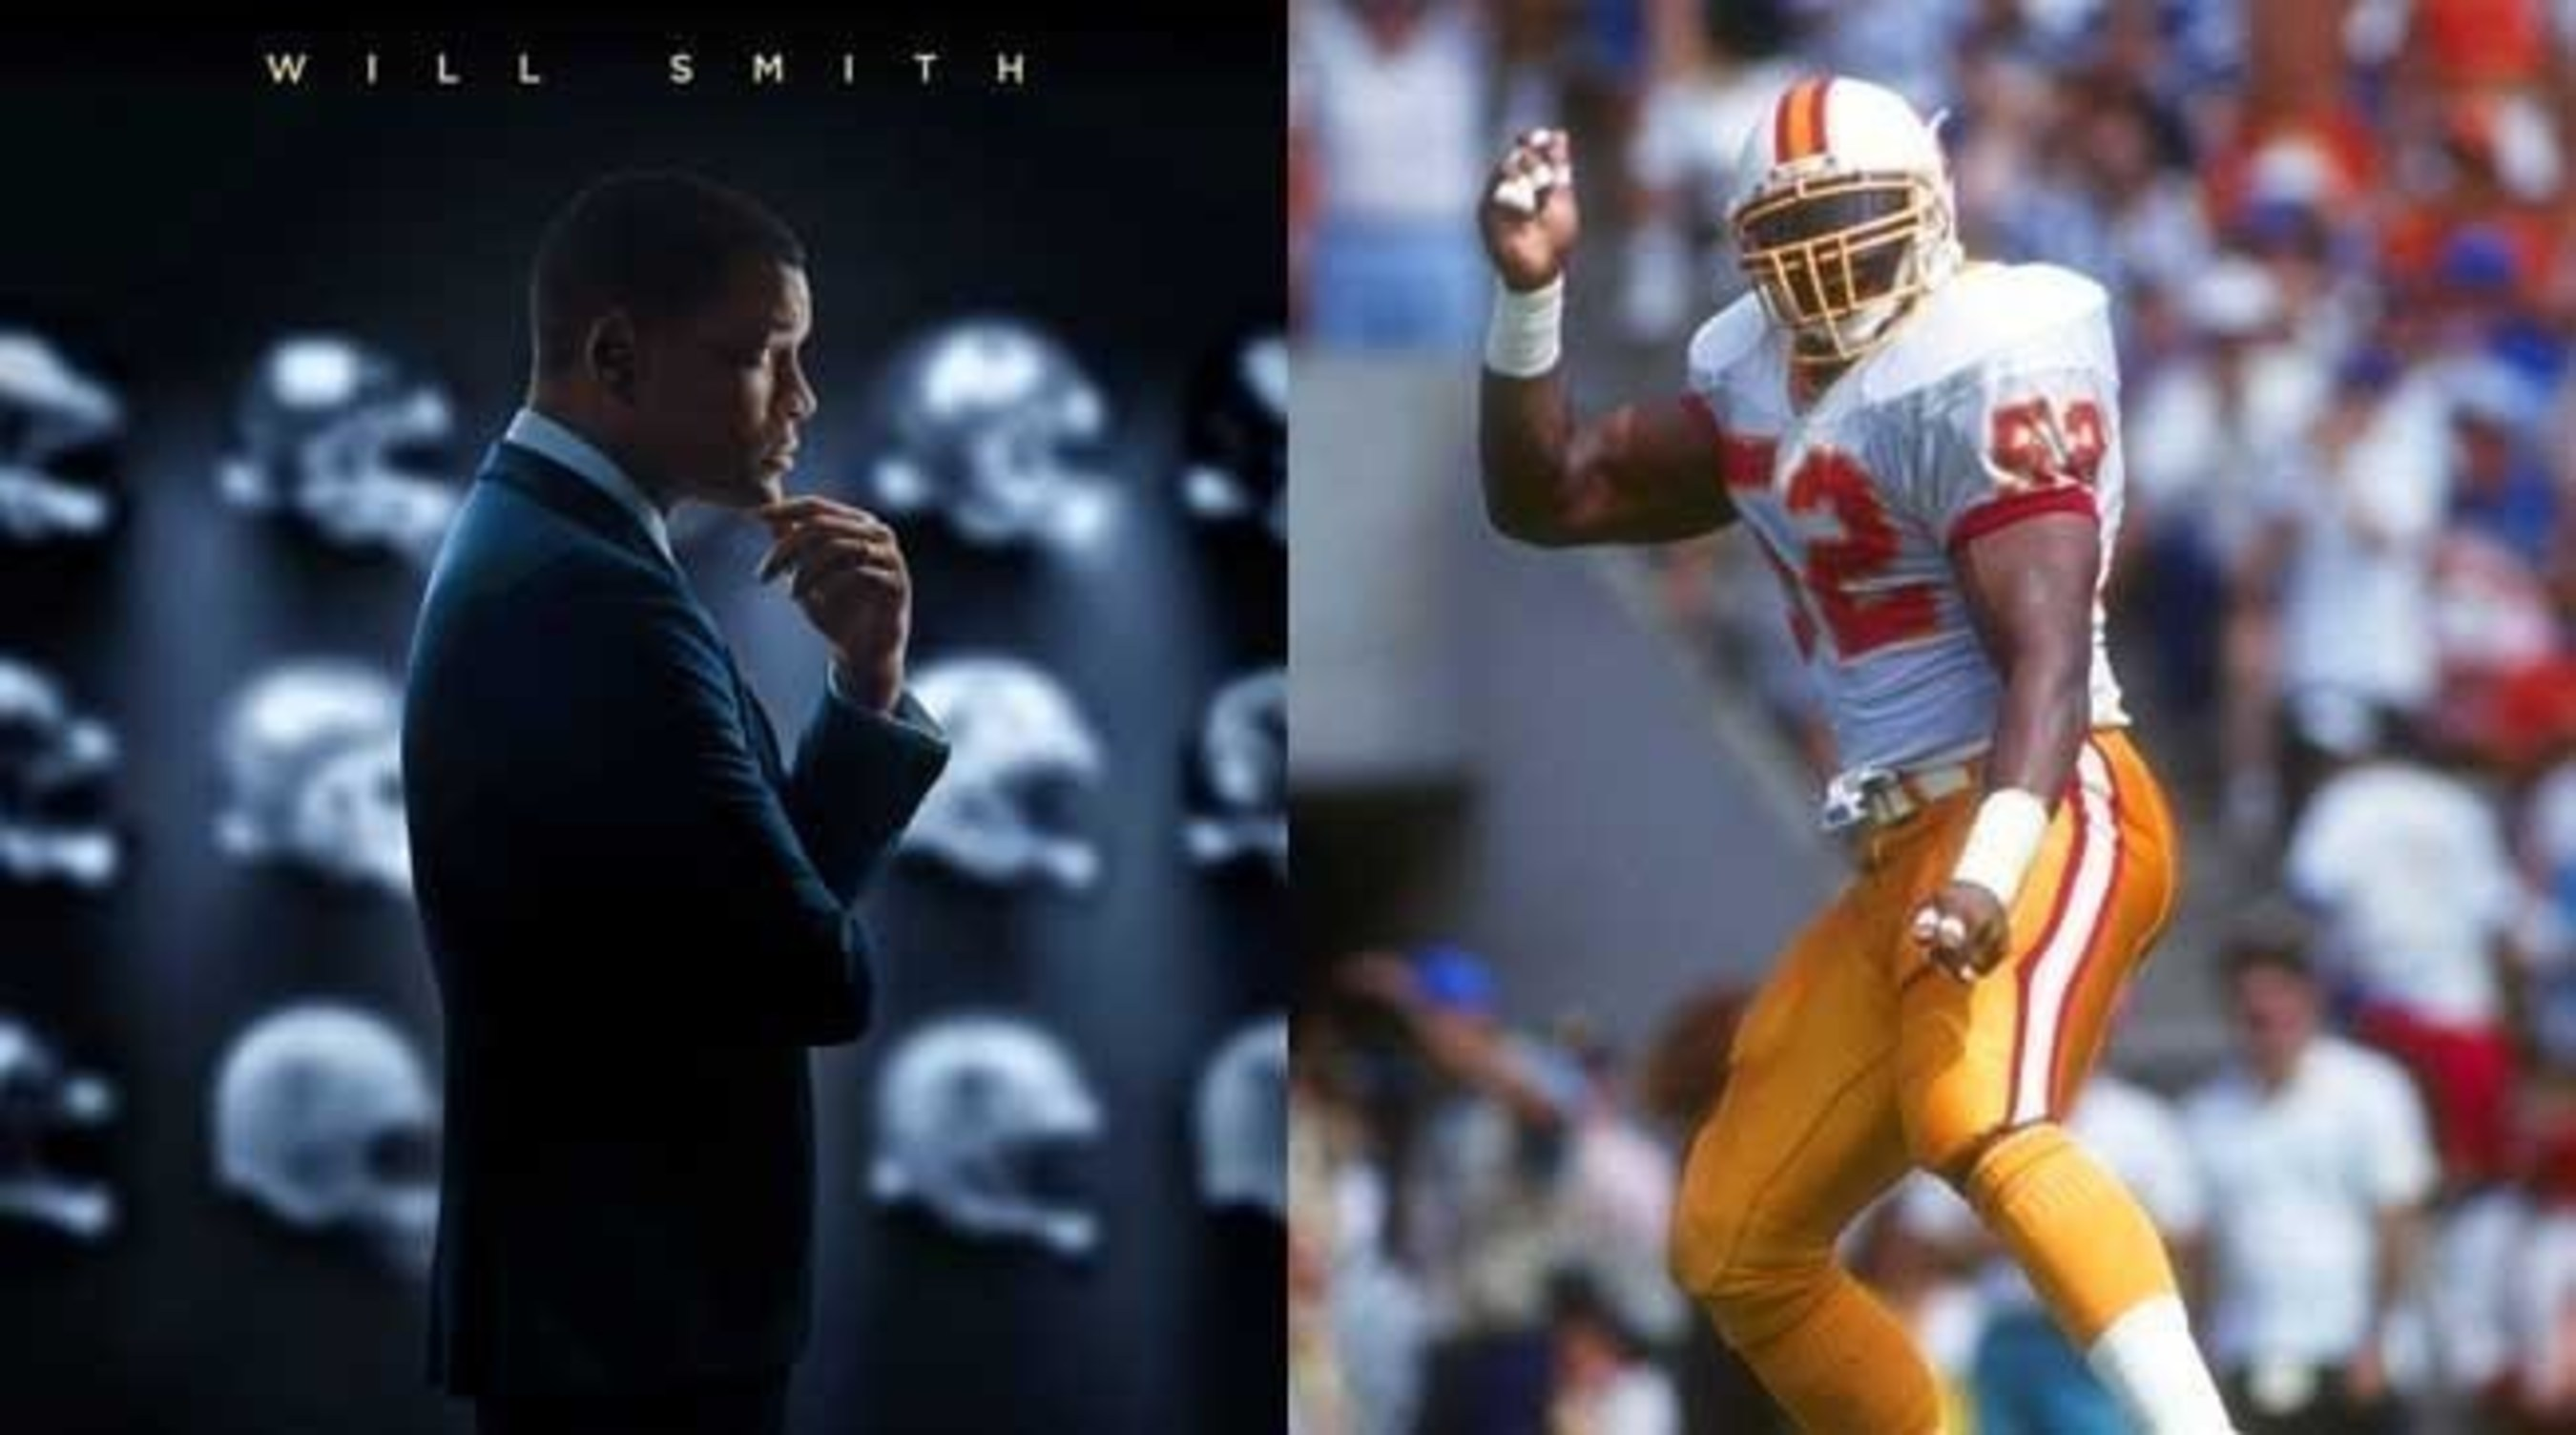 Sony Film 'Concussion' Endorsed by RWC and NFL All Star